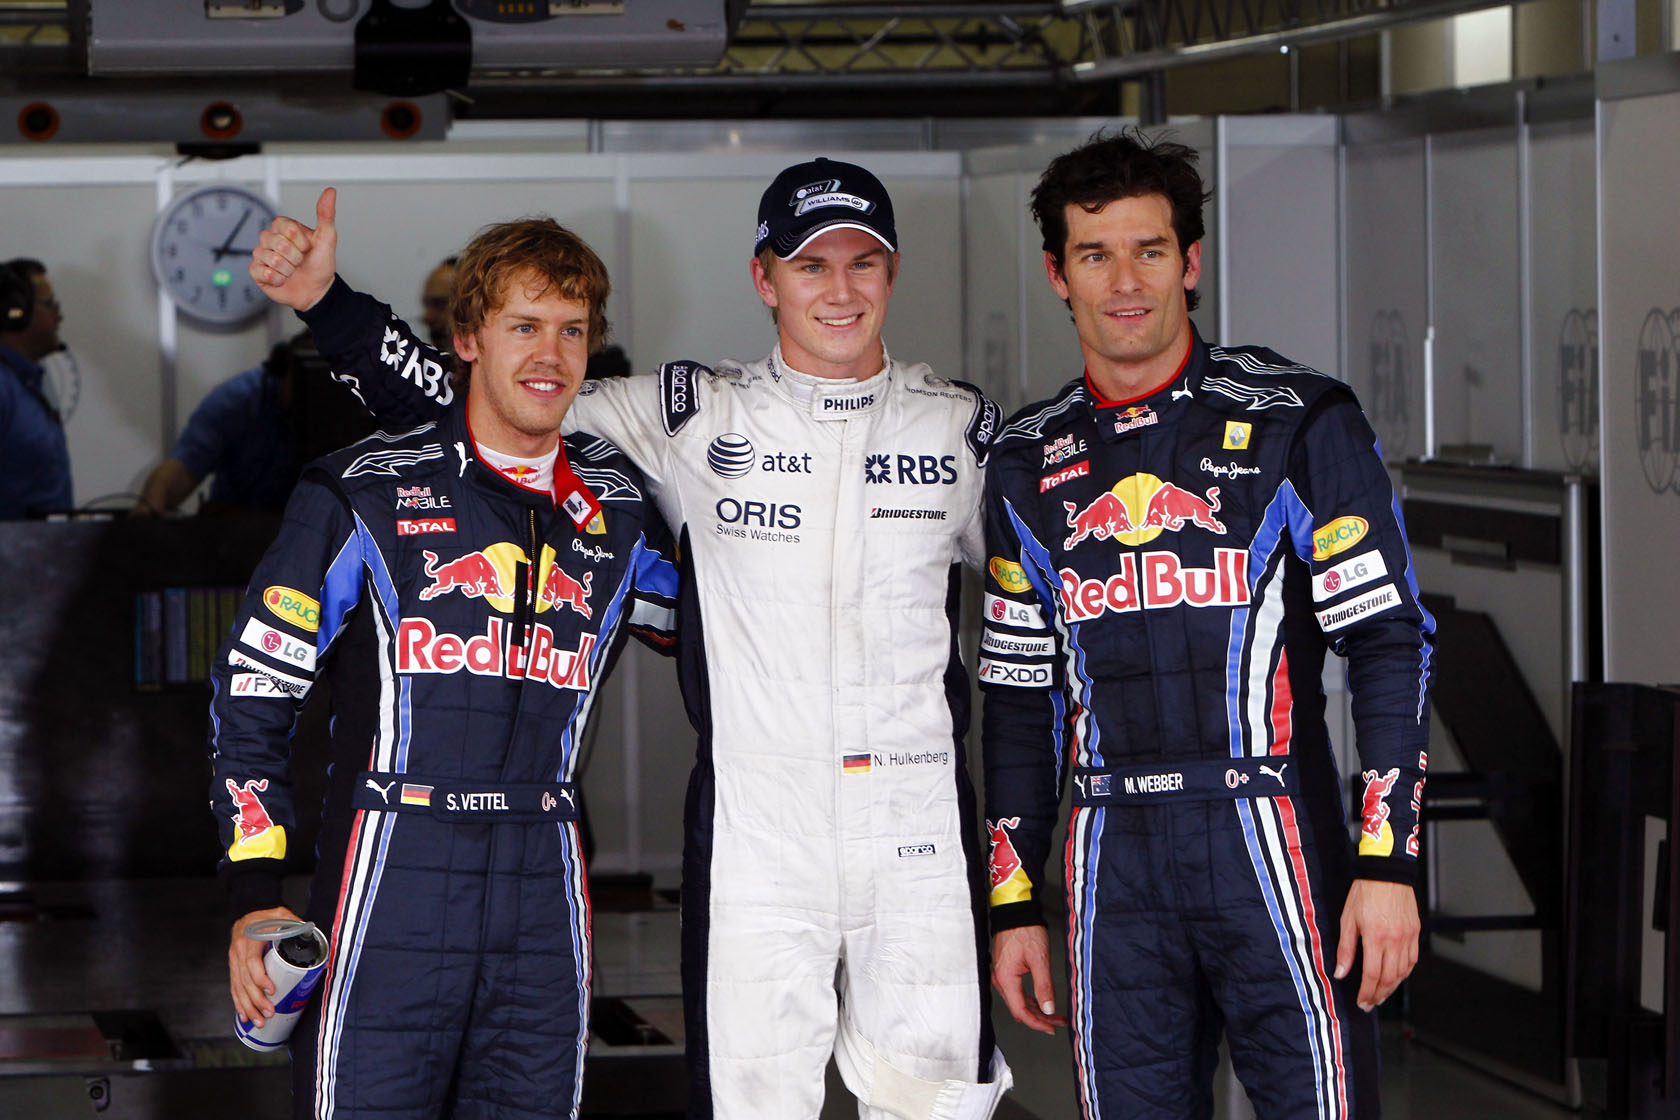 nico-hulkenberg-williams-pole-position-brazil-gp-interlagos-2010.